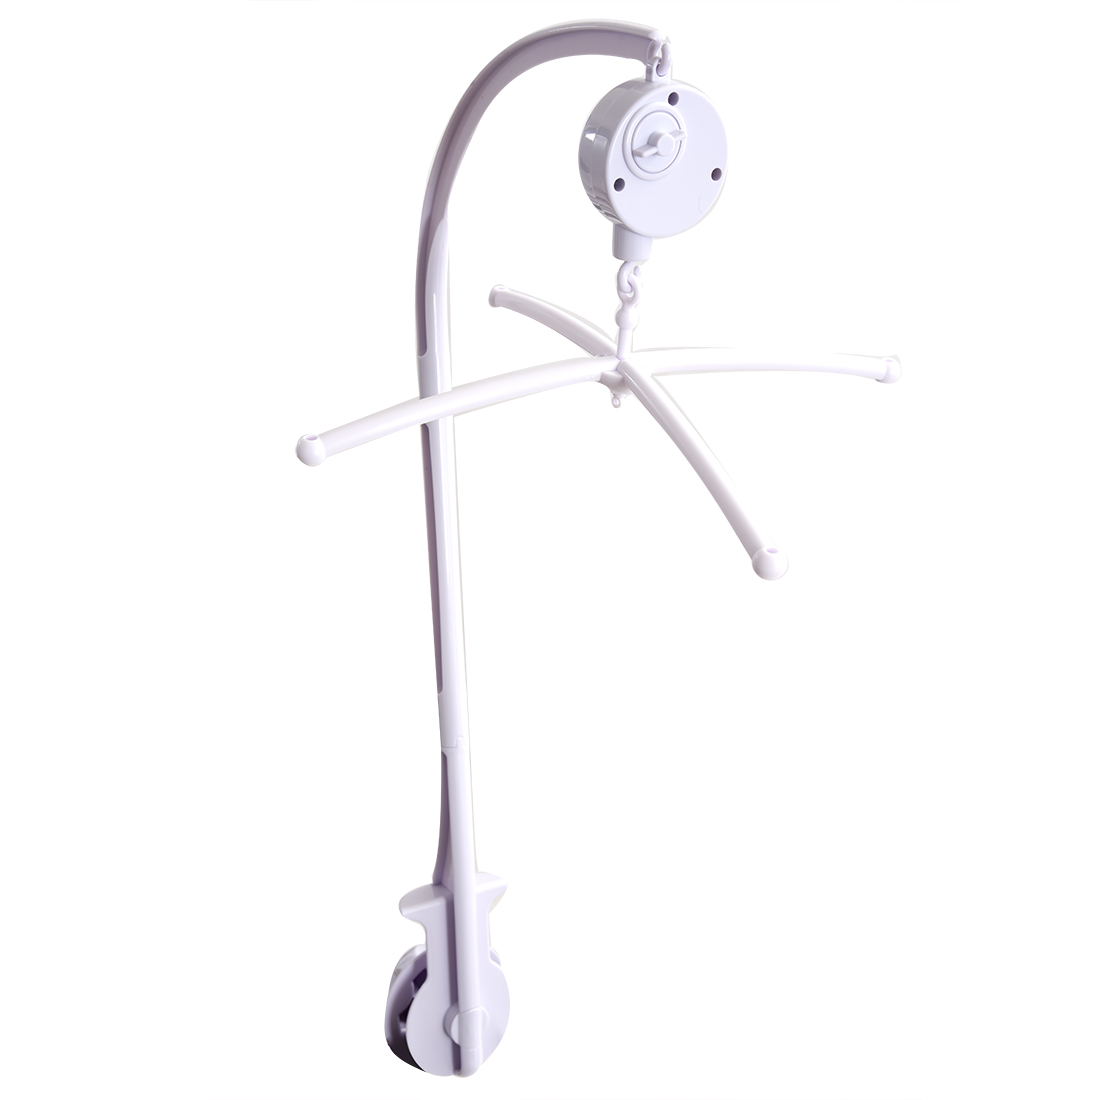 White Baby Crib Mobile Bed Bell Toy Holder Arm Bracket + Wind-up Music Box